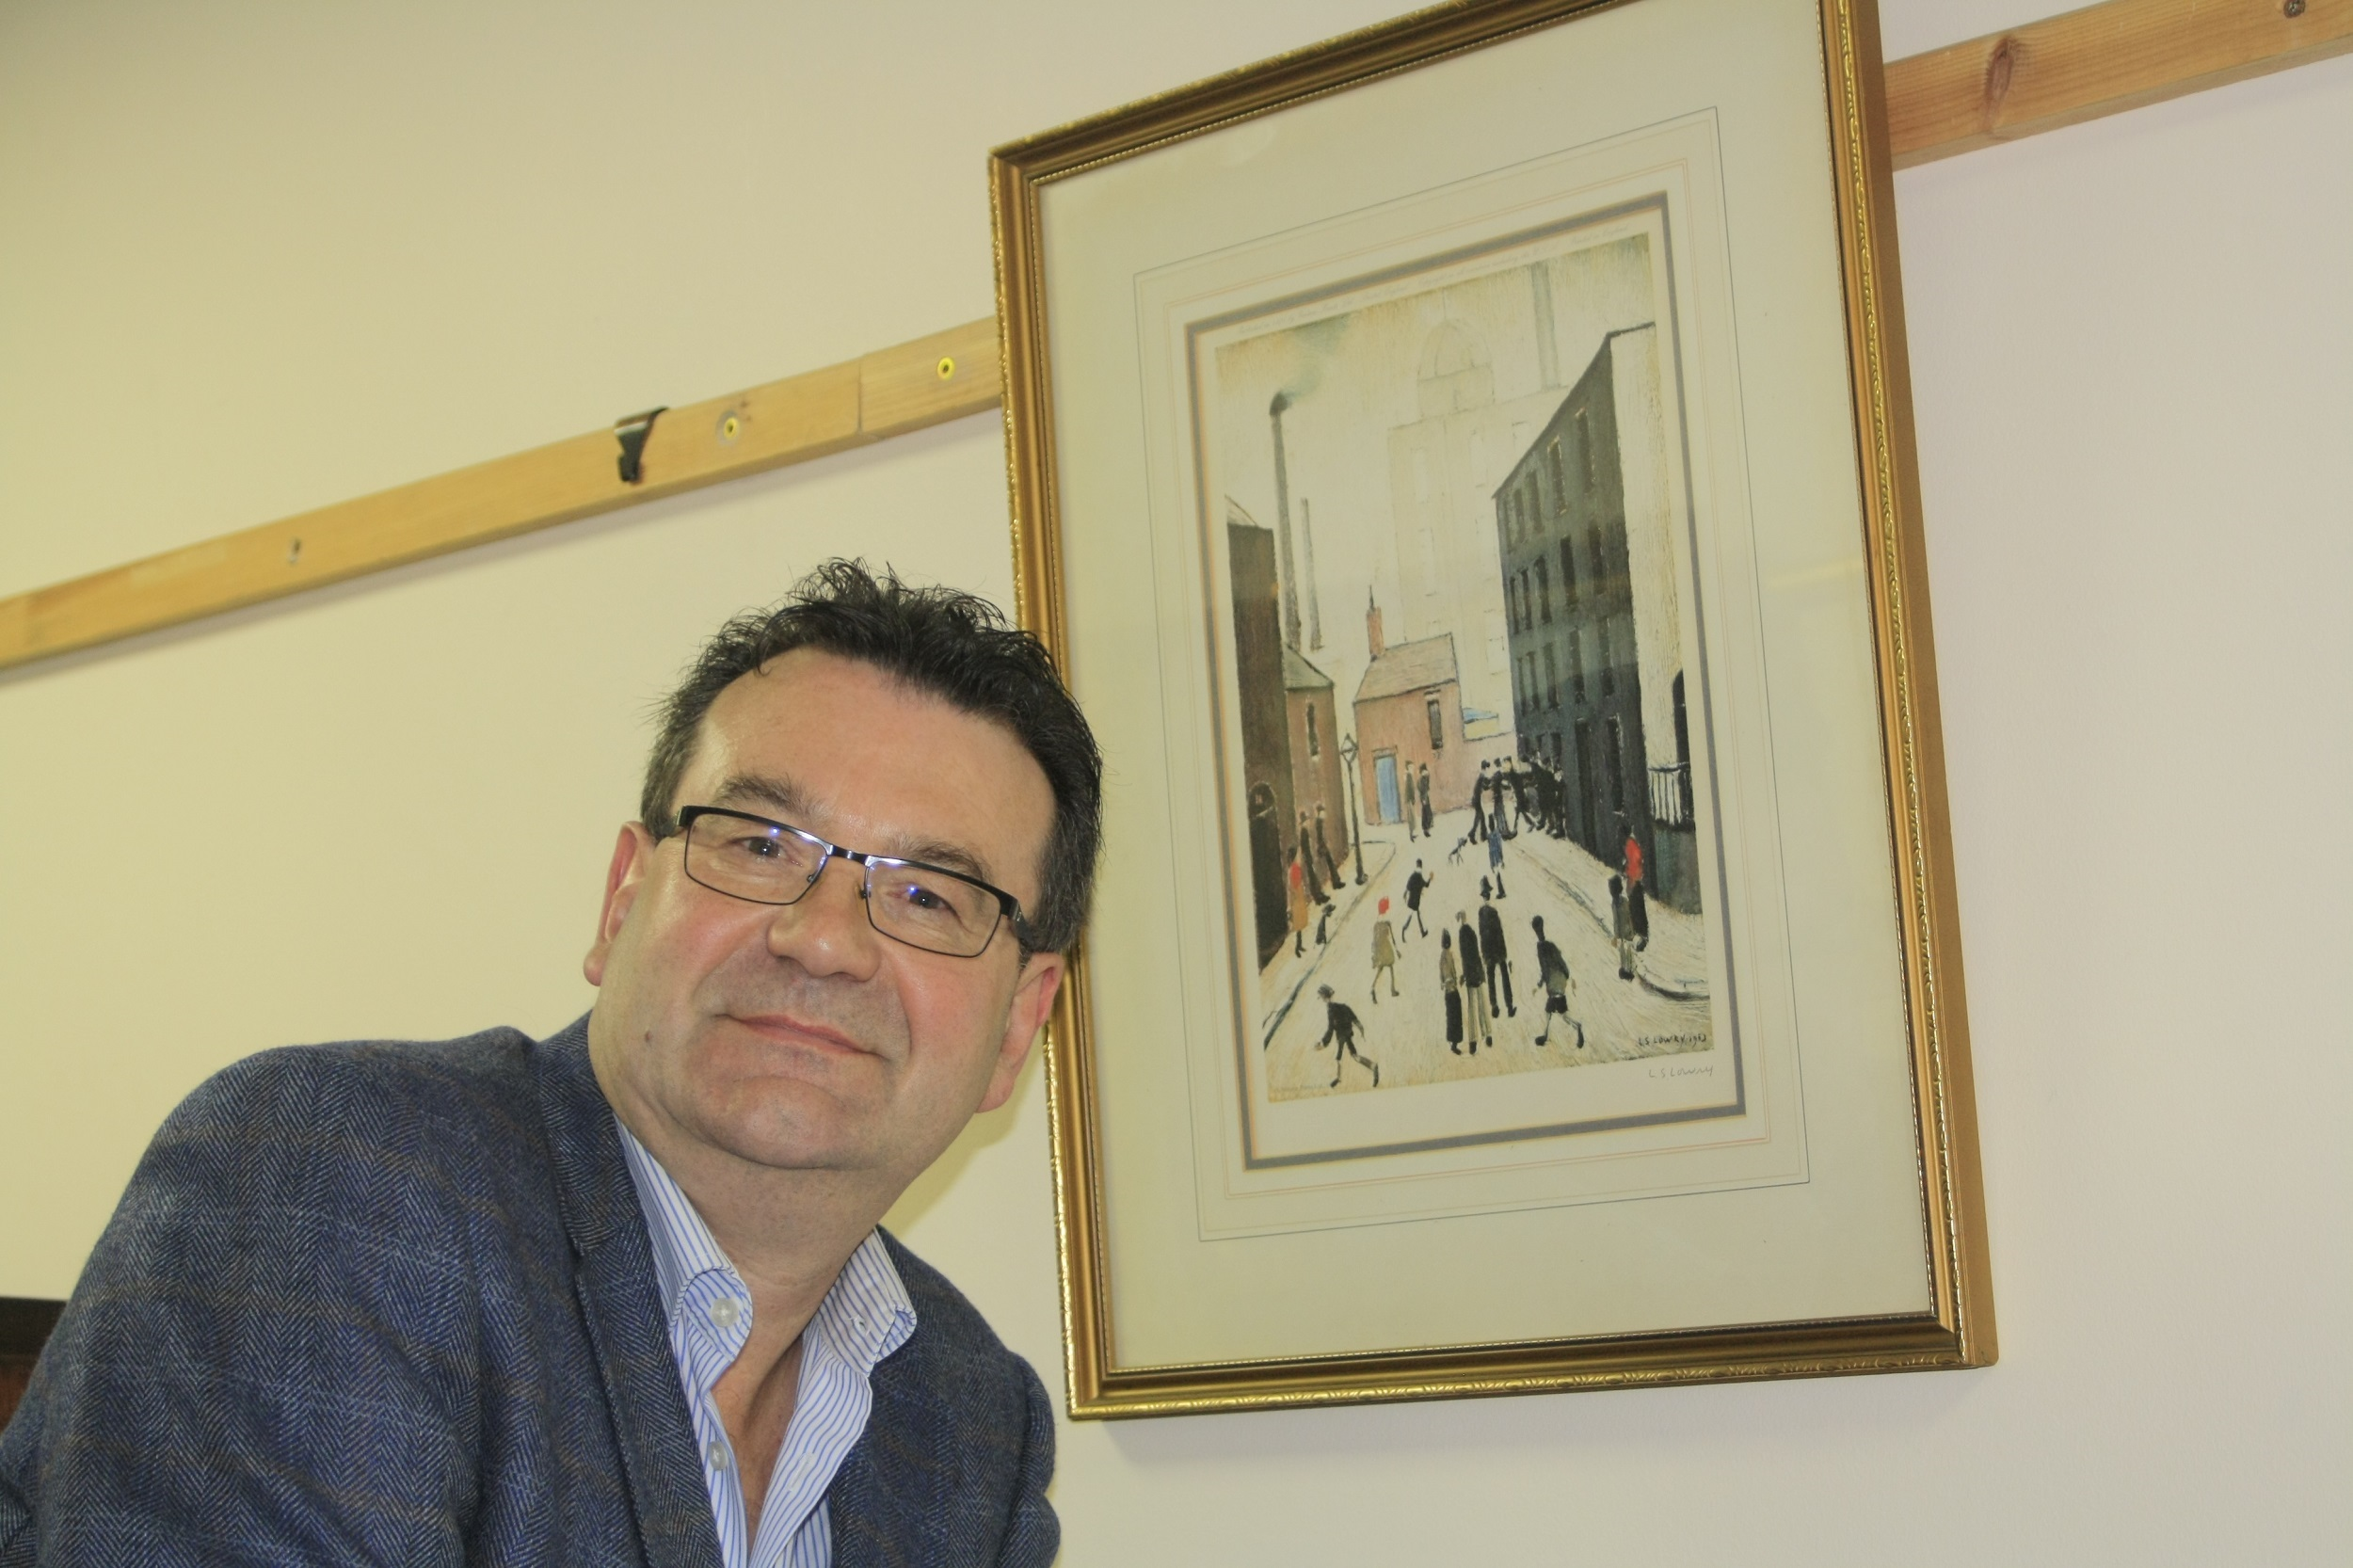 Richard Winterton searches for more masterpieces ahead of 'The Lowry Sale'